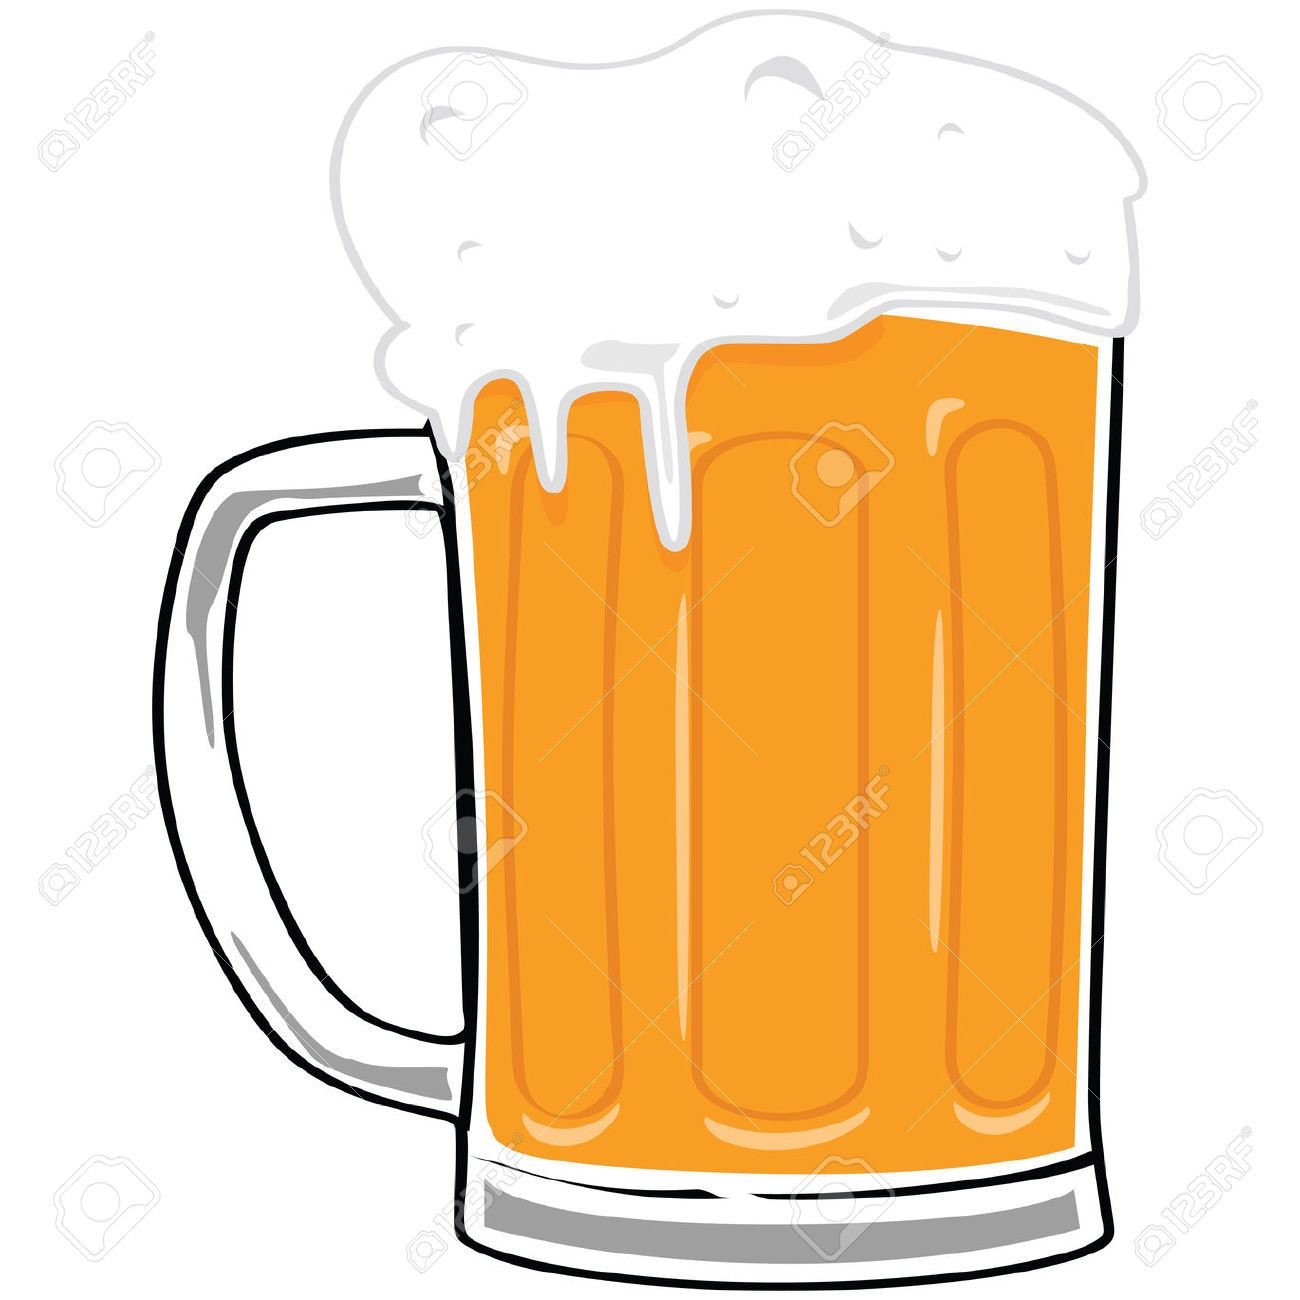 Beer Mug Stock Photos, Pictures, Royalty Free Beer Mug Images And.